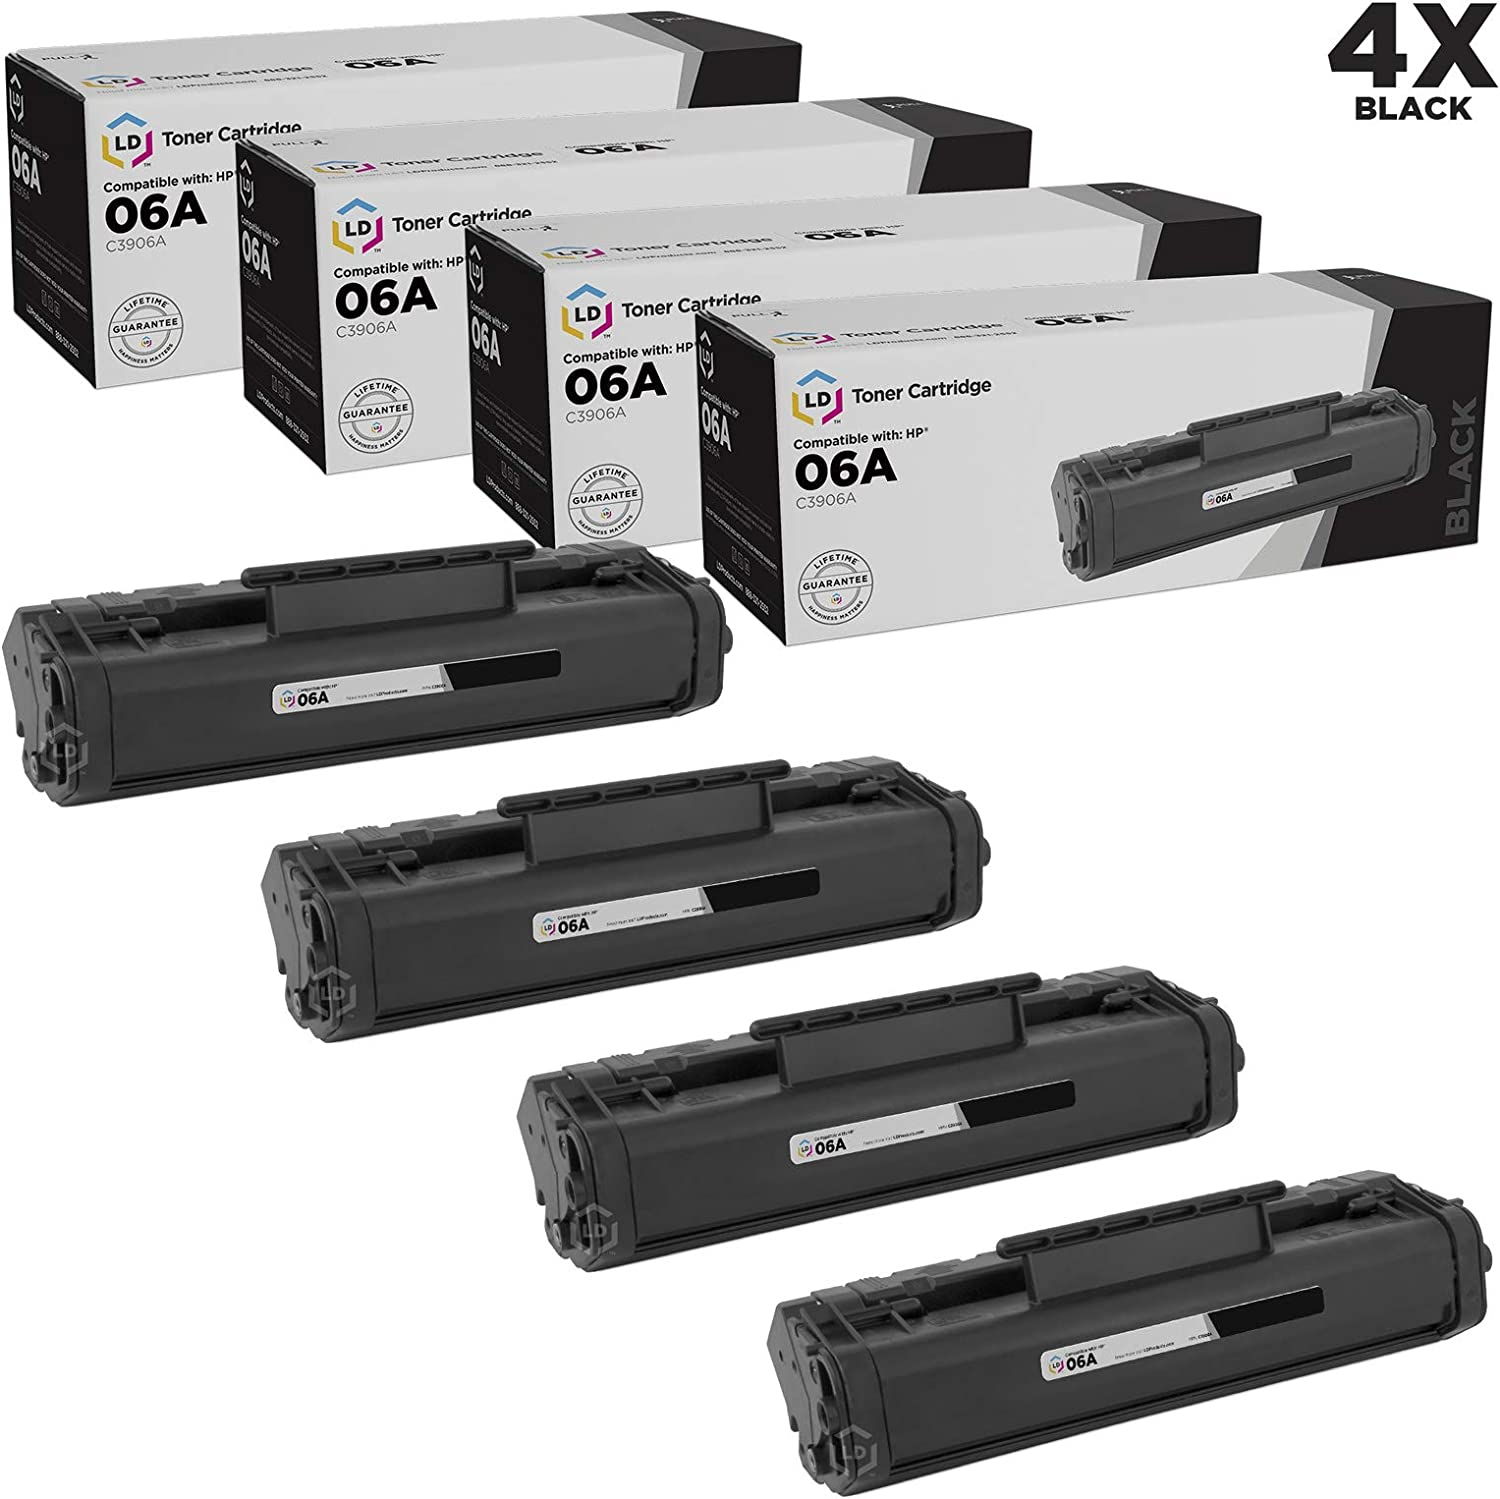 LD Remanufactured Toner Cartridge Replacement for HP 06A C3906A (Black, 4-Pack)